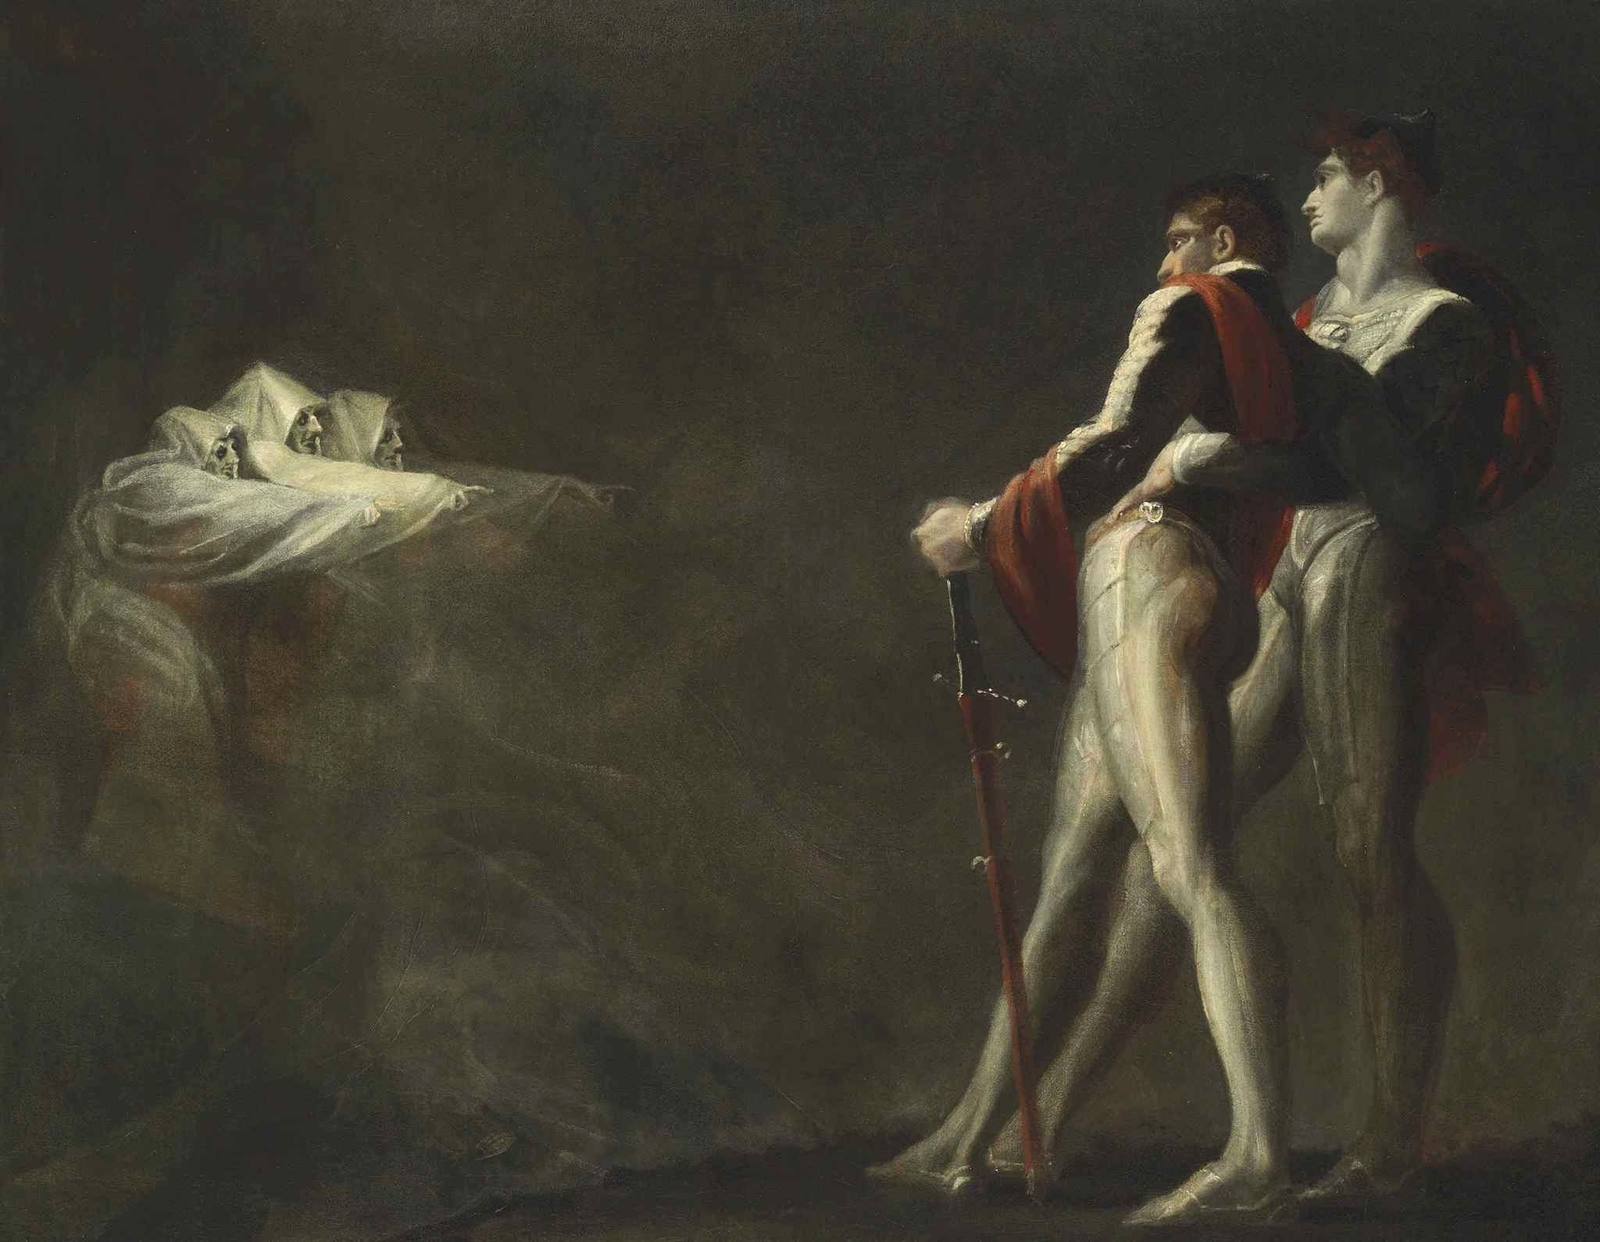 a summary of act thee of william shakespeares play macbeth Find and save ideas about macbeth play on pinterest | see more ideas about the macbeth, the tragedy of macbeth and macbeth william shakespeare.